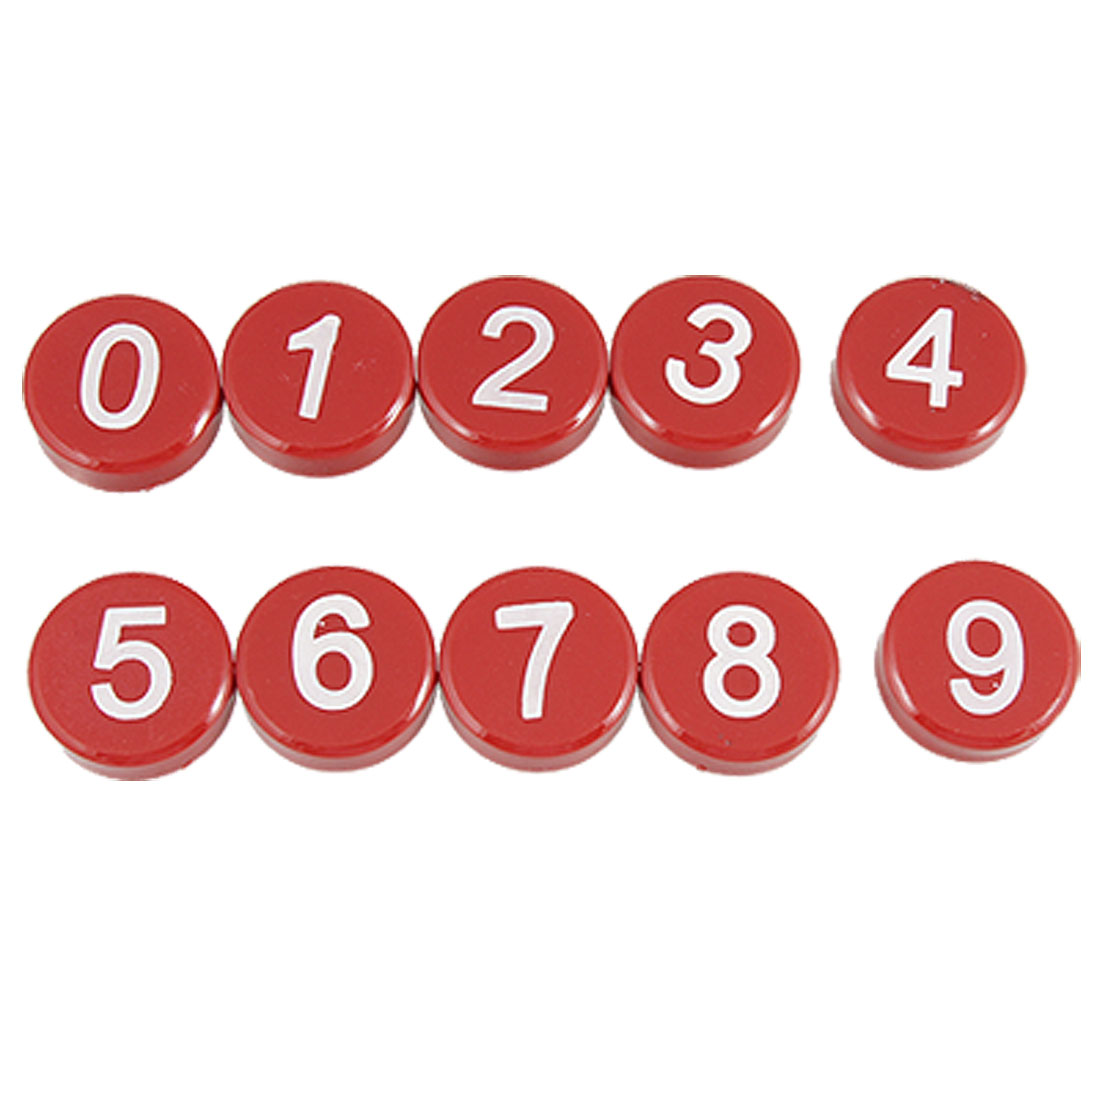 10 Pcs White Arabic Number Red Magnetic Button Sticker Ornament for Fridge